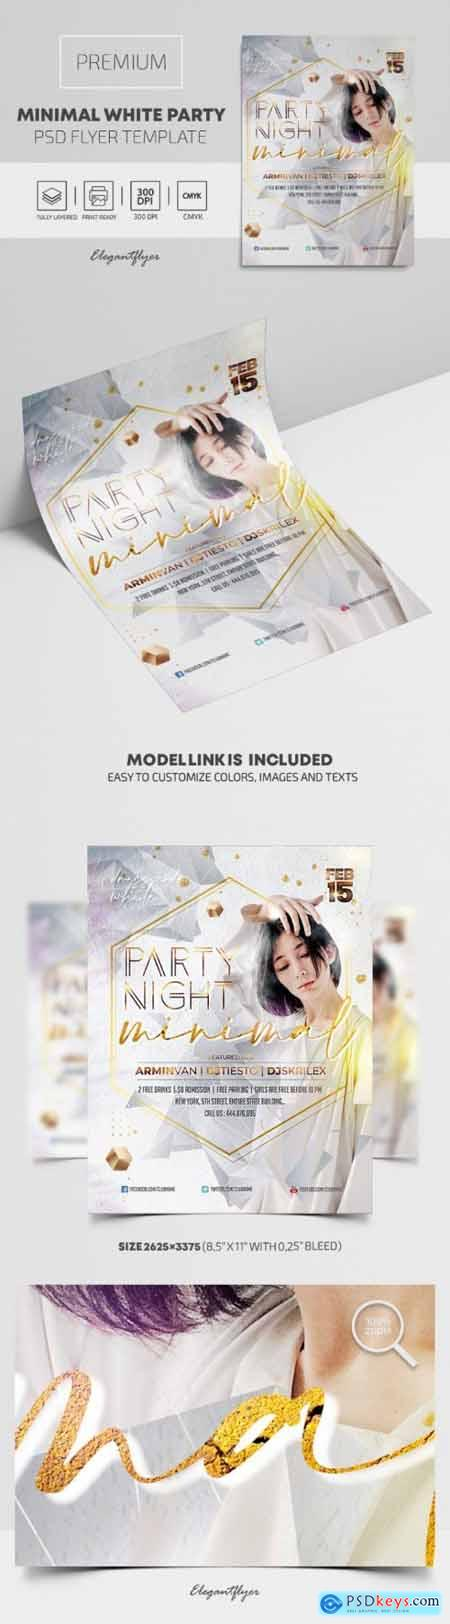 Minimal White Party – Premium PSD Flyer Template